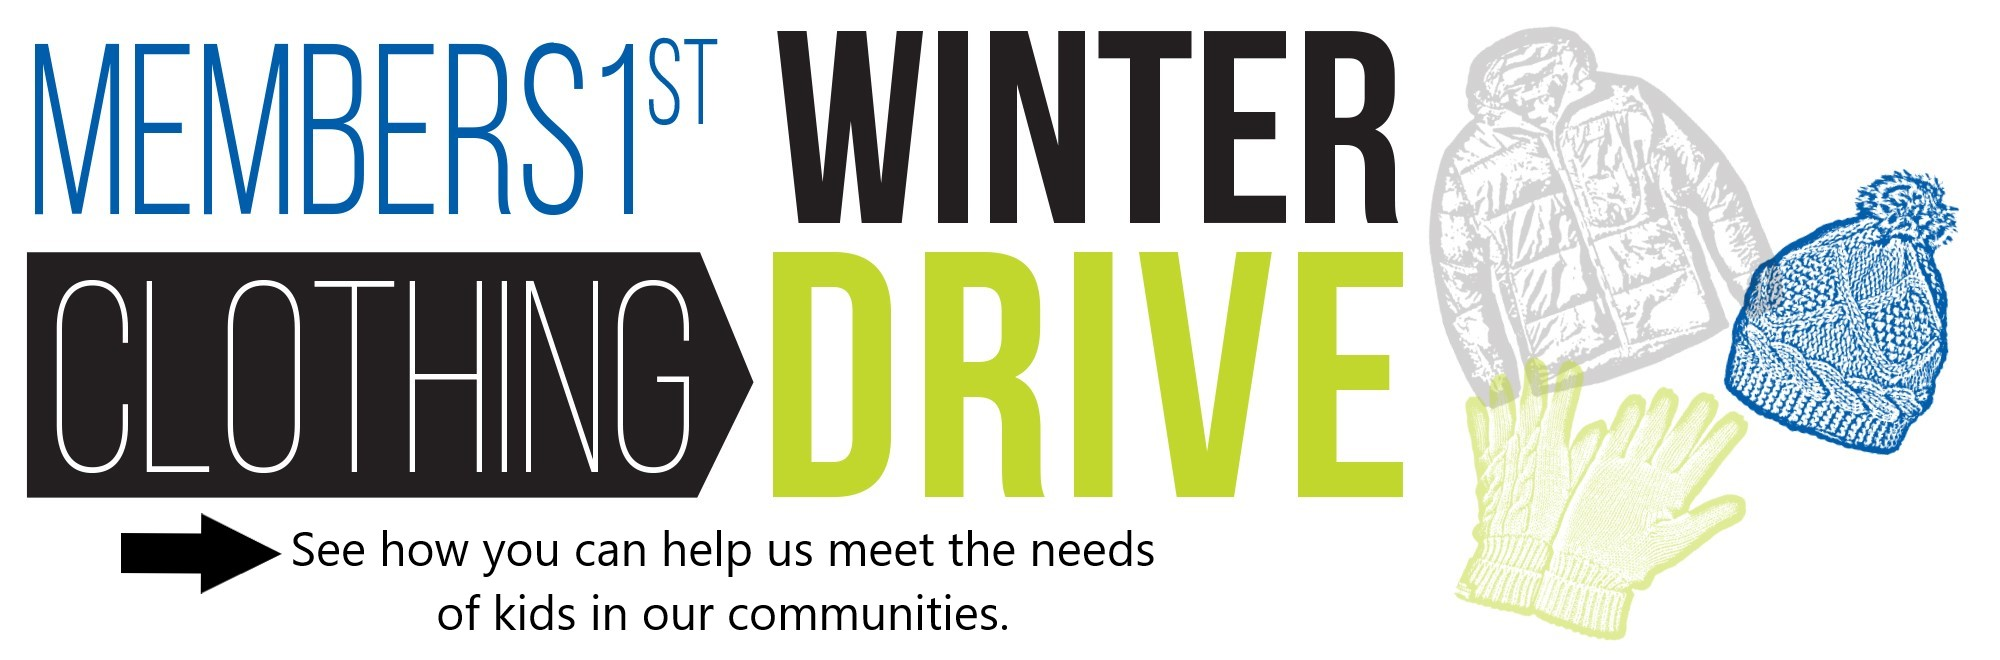 Donate to our winter clothing drive!